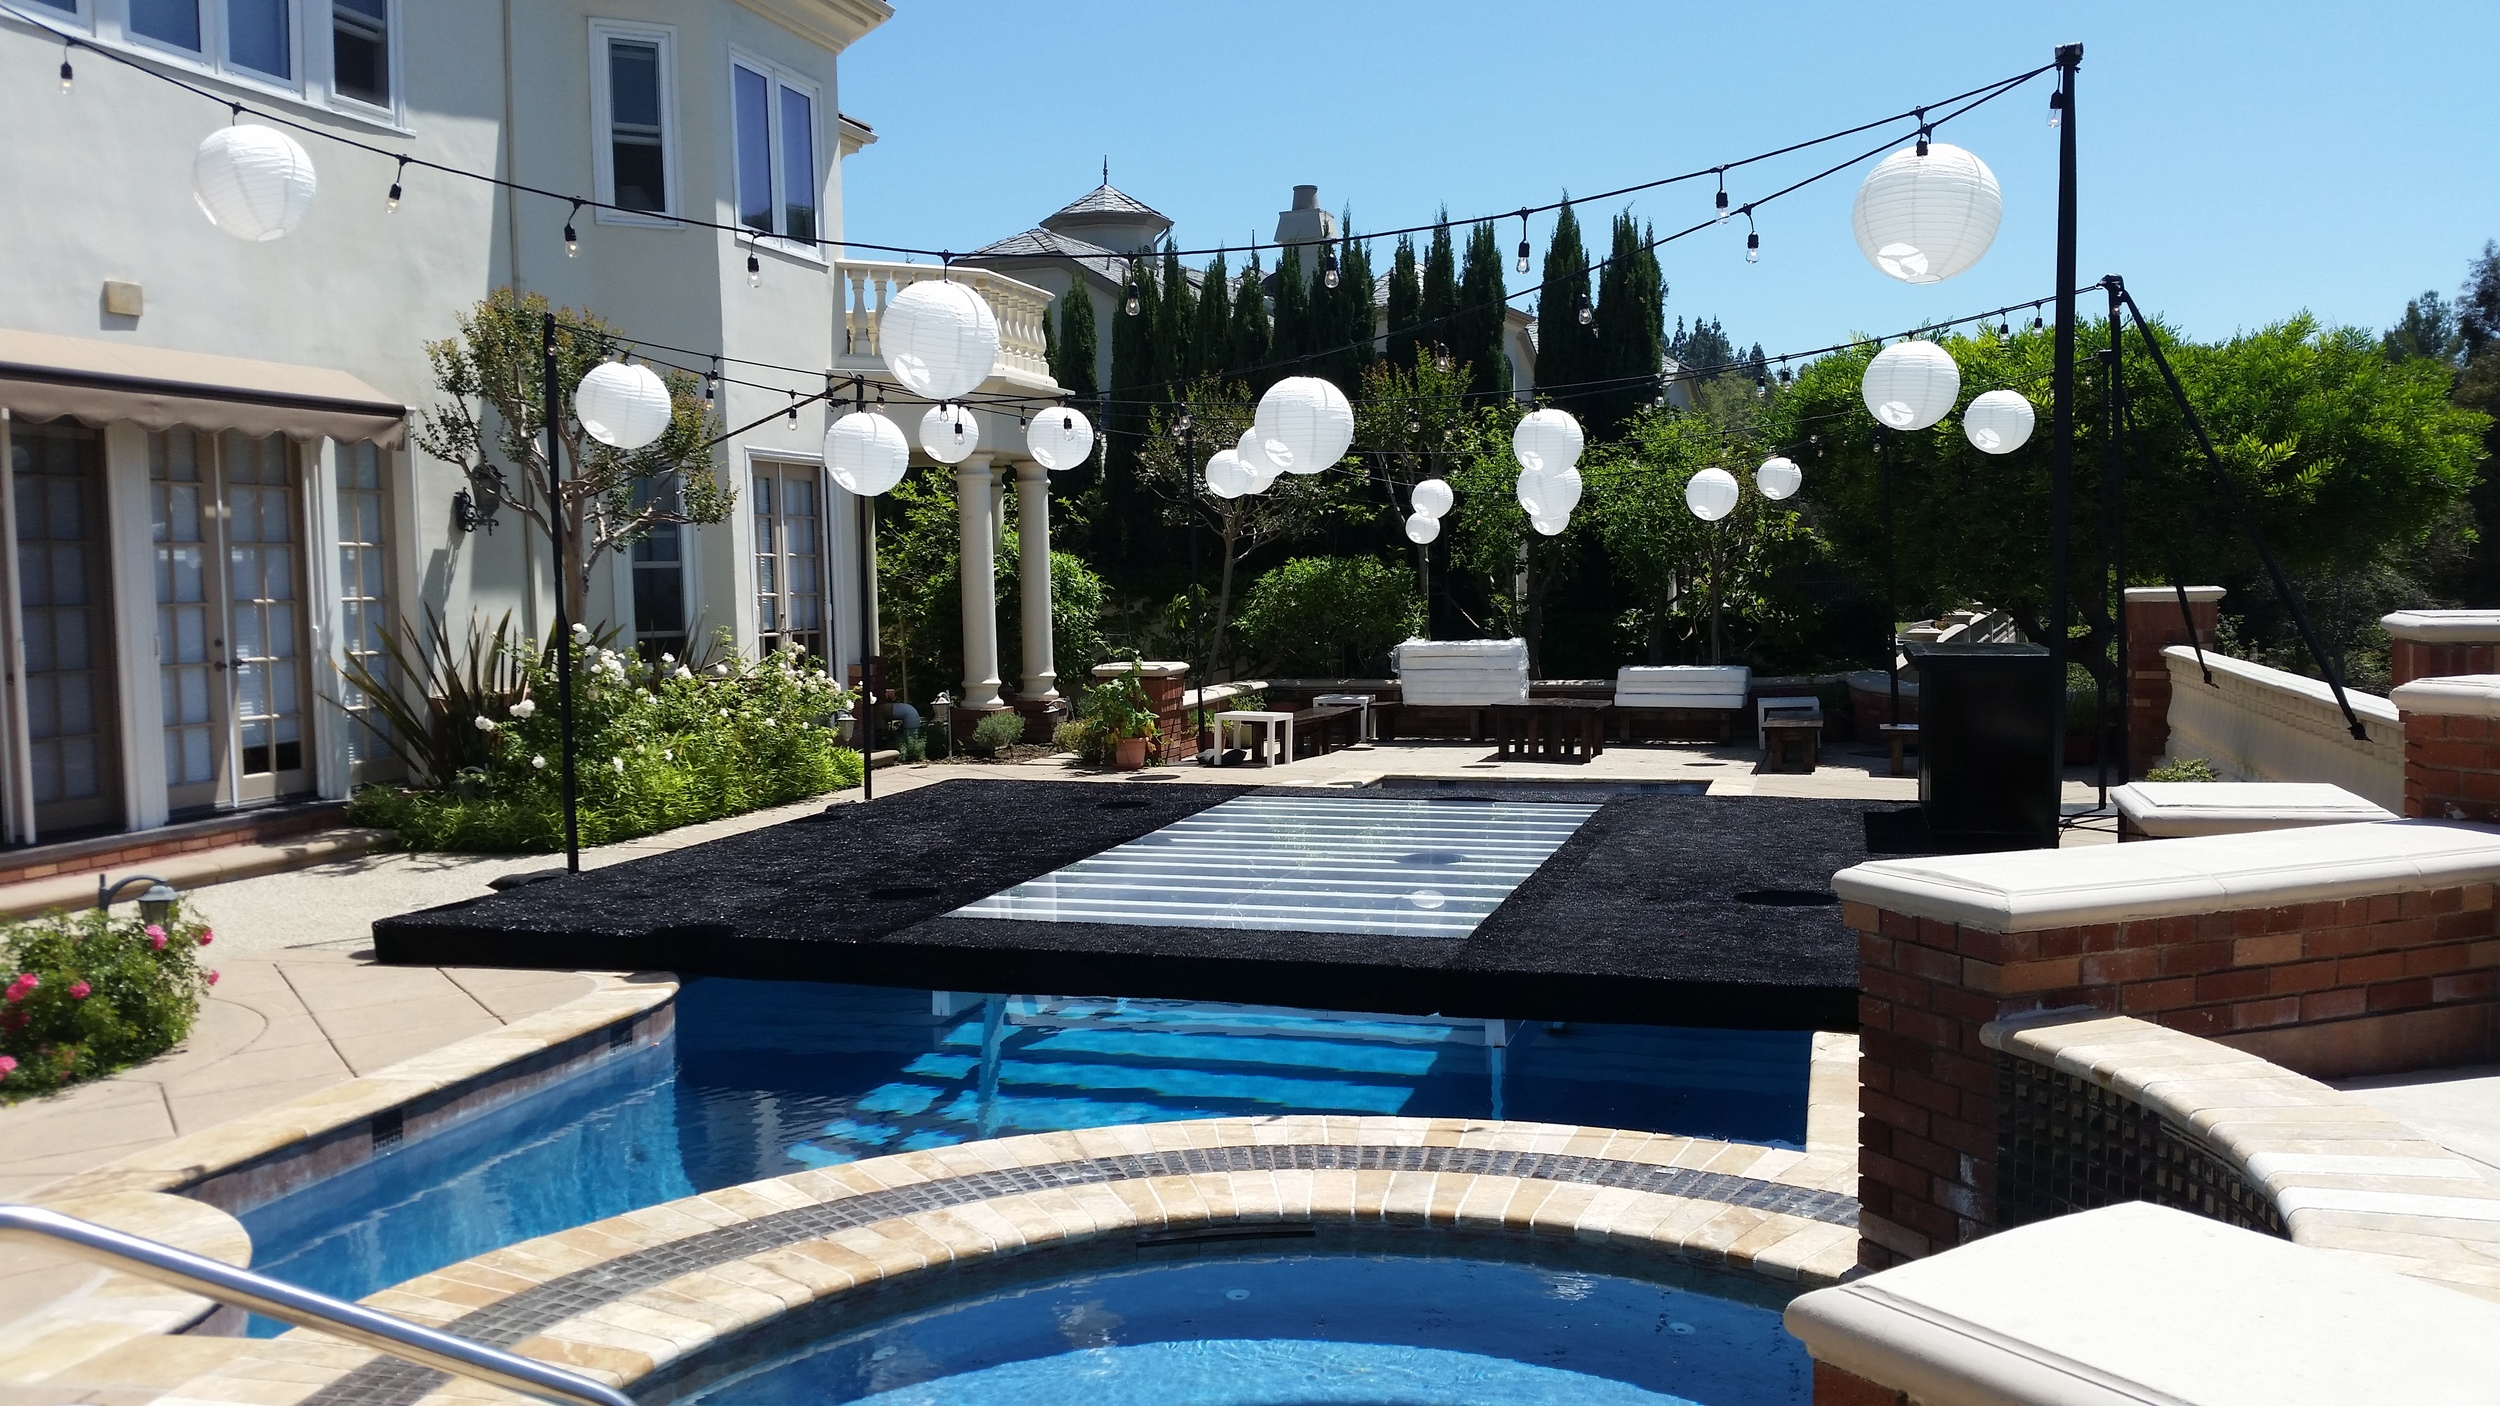 plexiglass pool cover rental